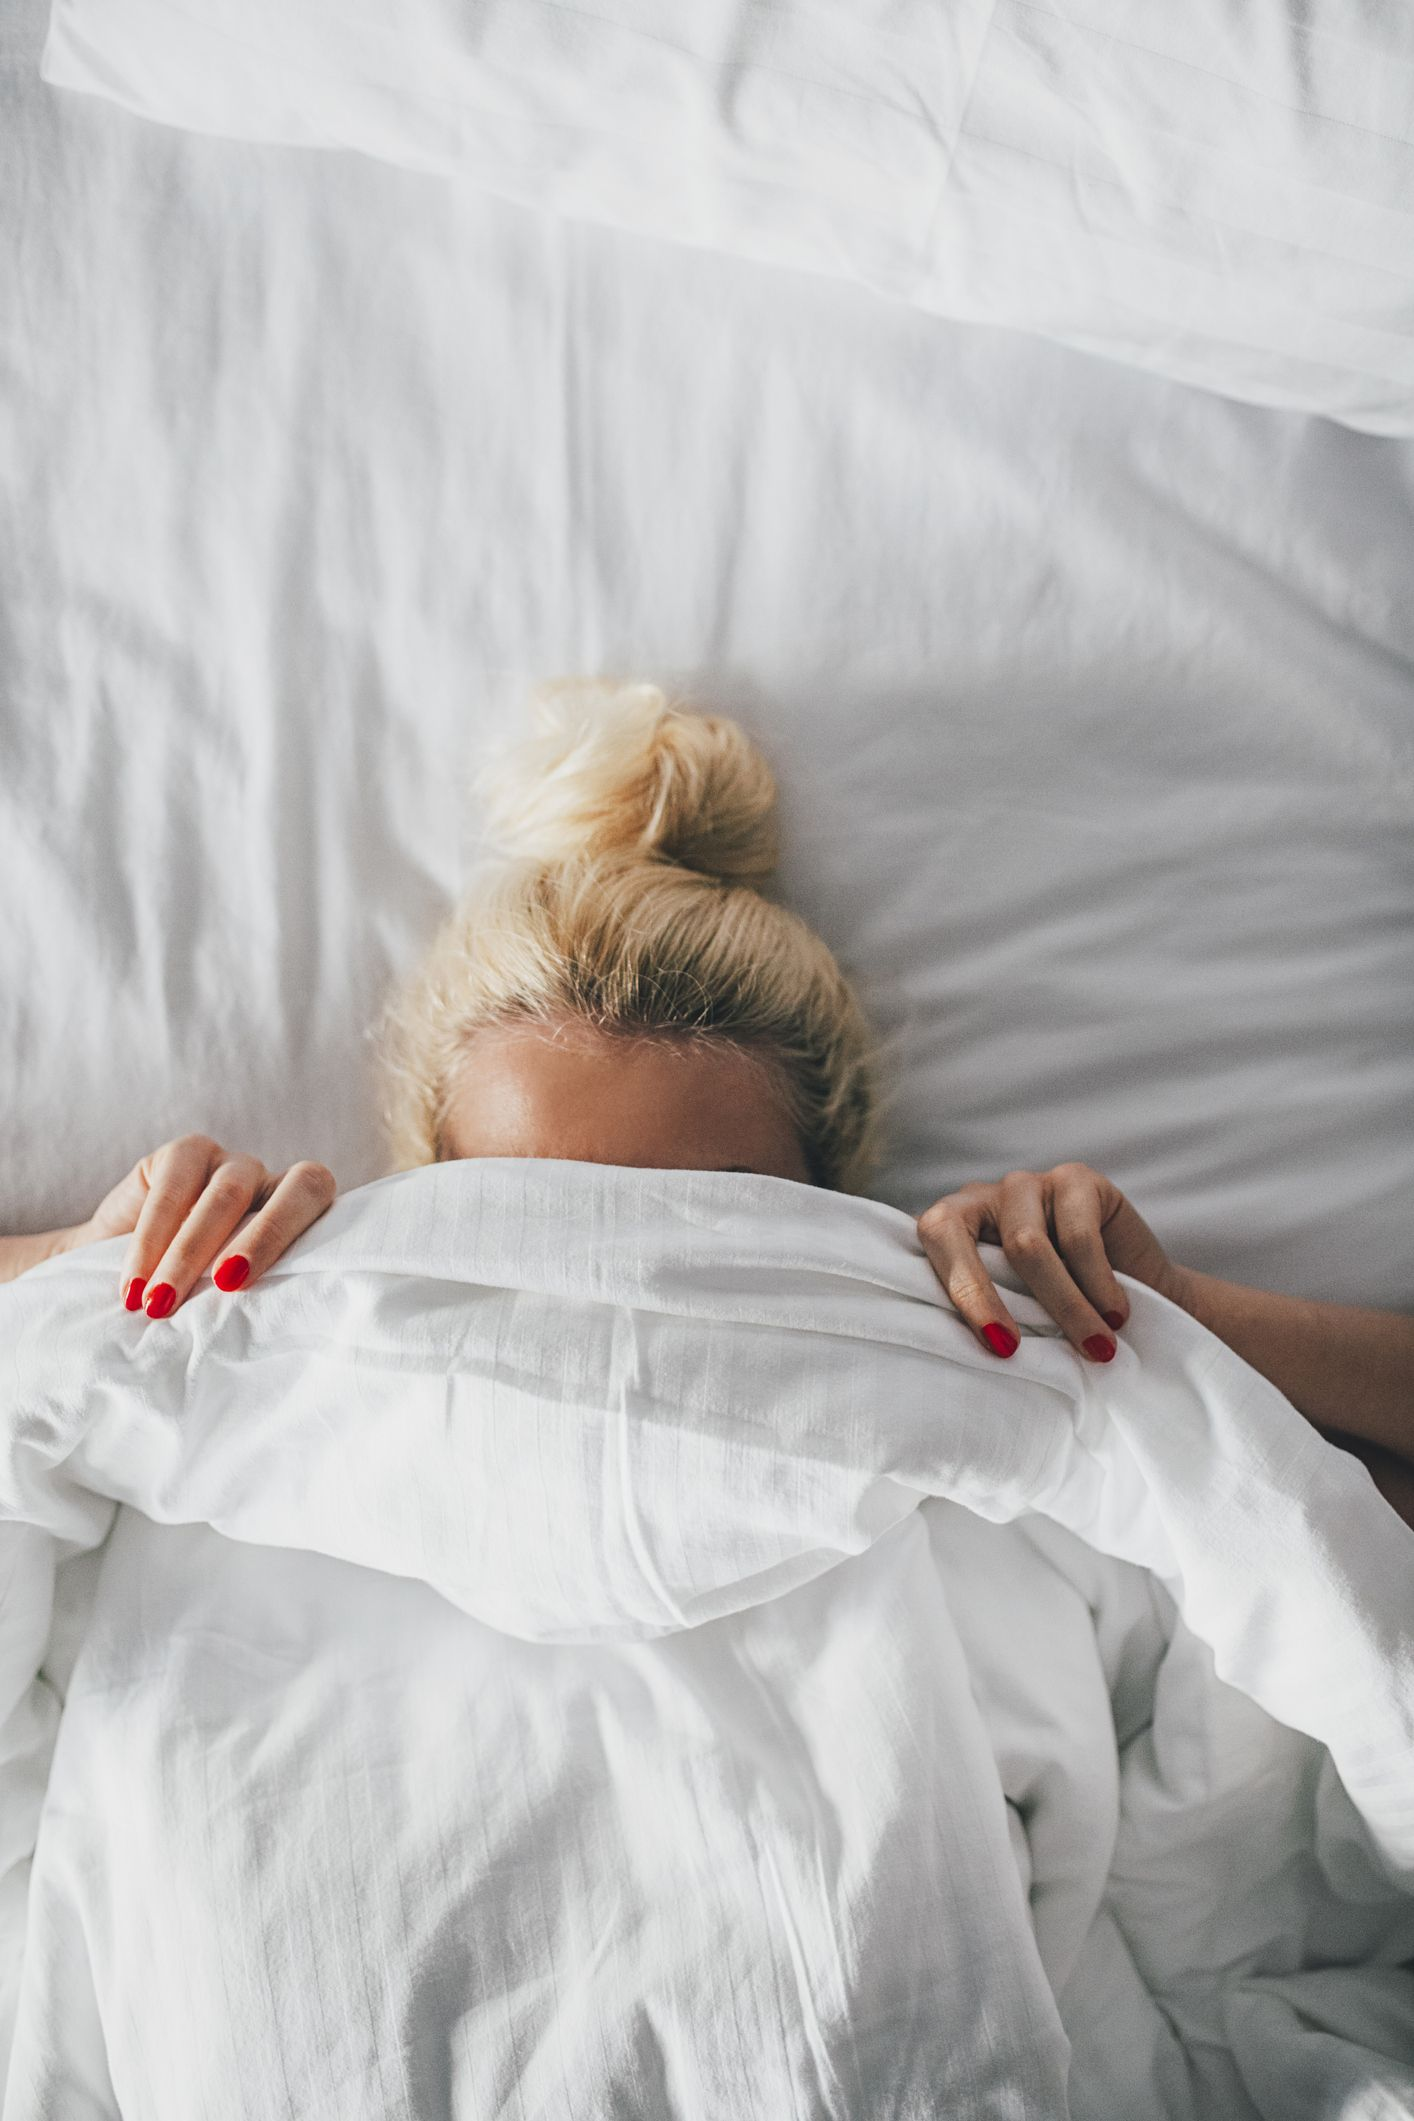 How Often Should You Wash Your Sheets? Experts Weigh In